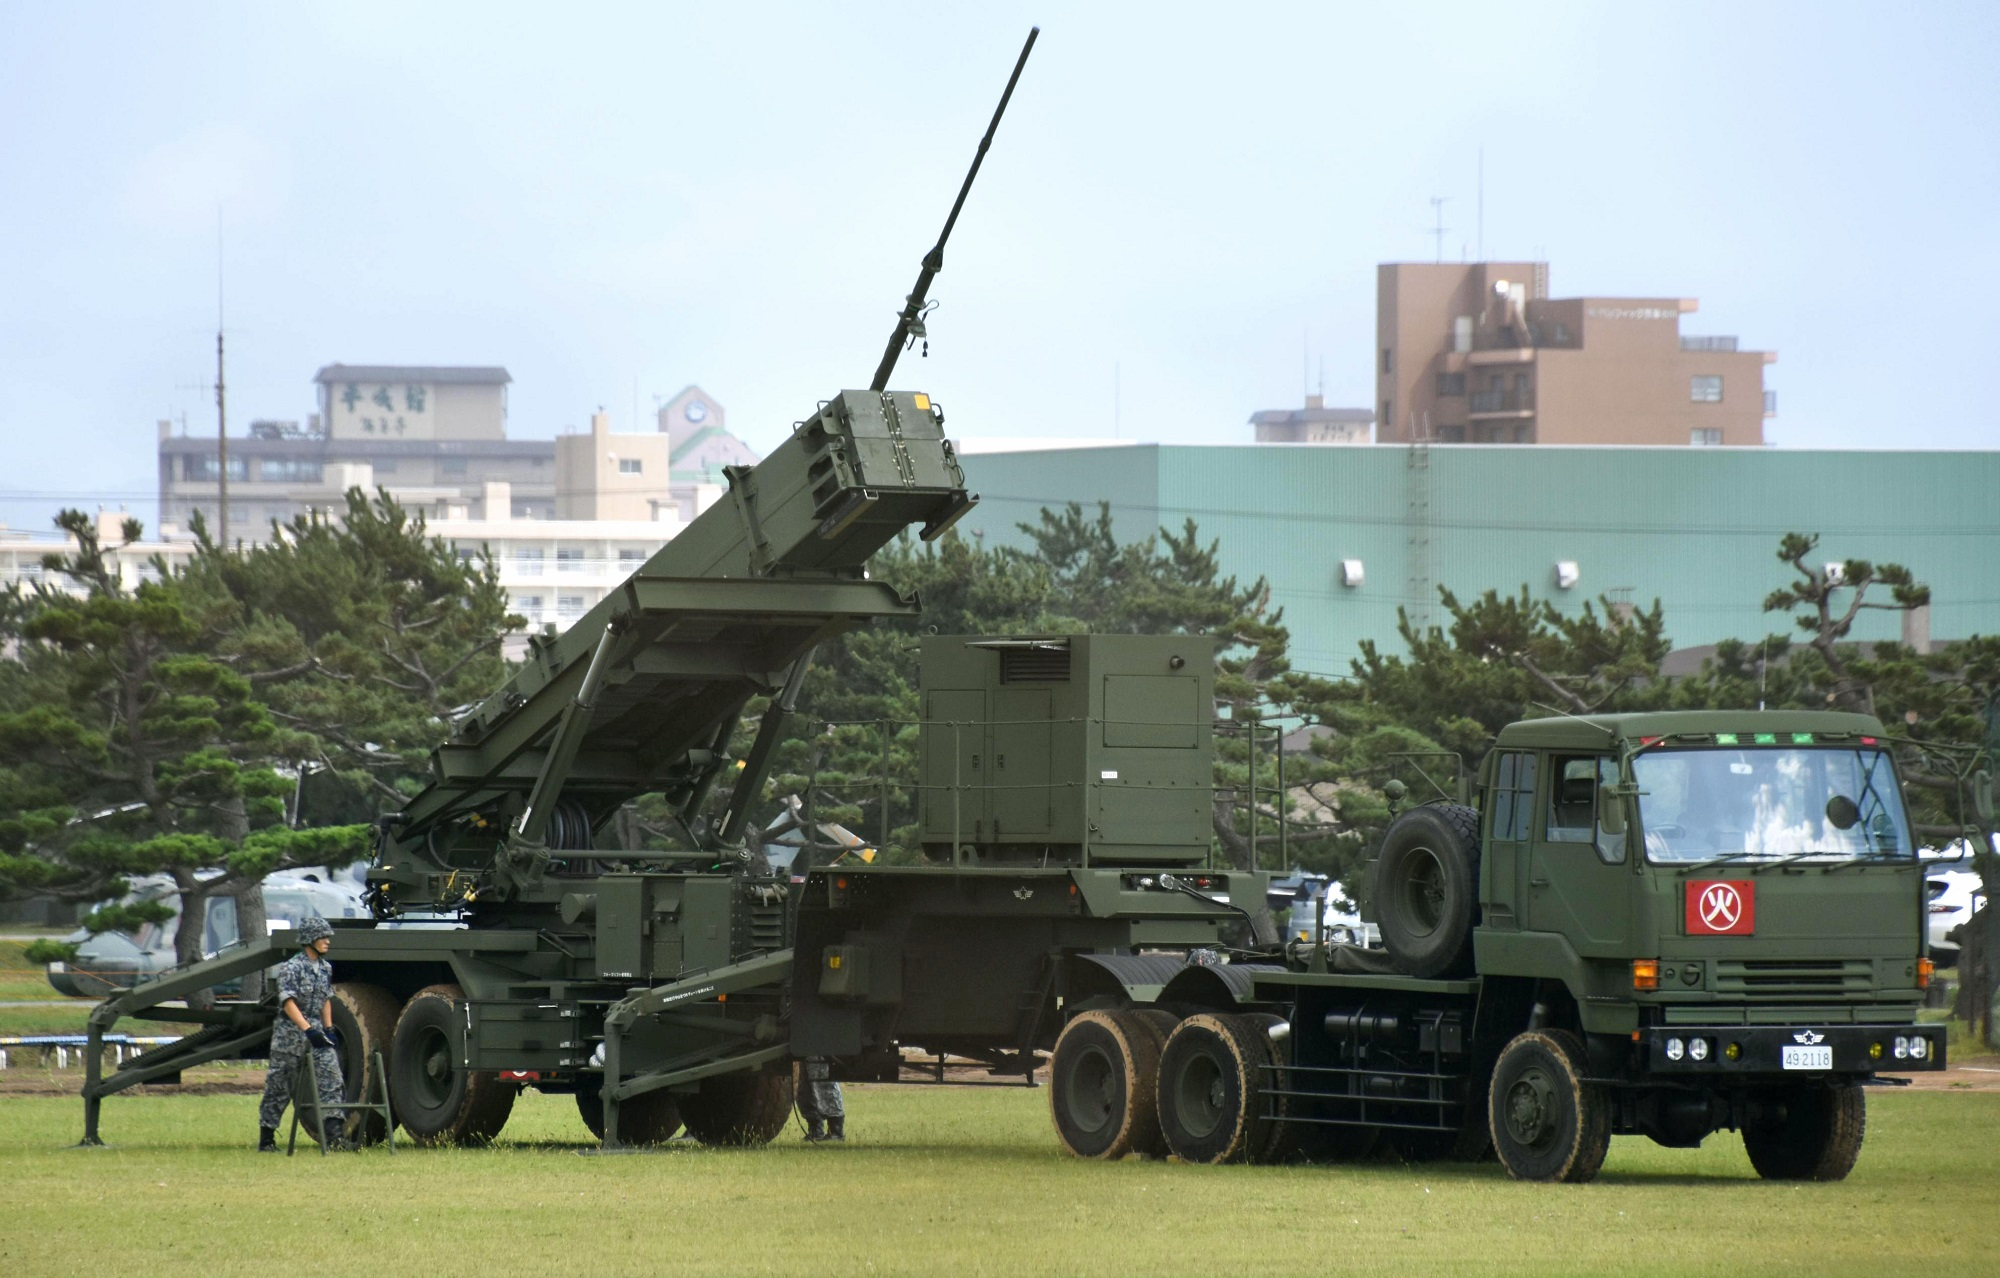 South Korea plans to give an order of new Patriot Advanced Capability-3 missiles as part of an ongoing effort to defend against North Korea's ballistic missile threat. Seen here, a PAC-3 interceptor missile system deployed at the Hakodate base in Japan. (Kyodo News via AP)